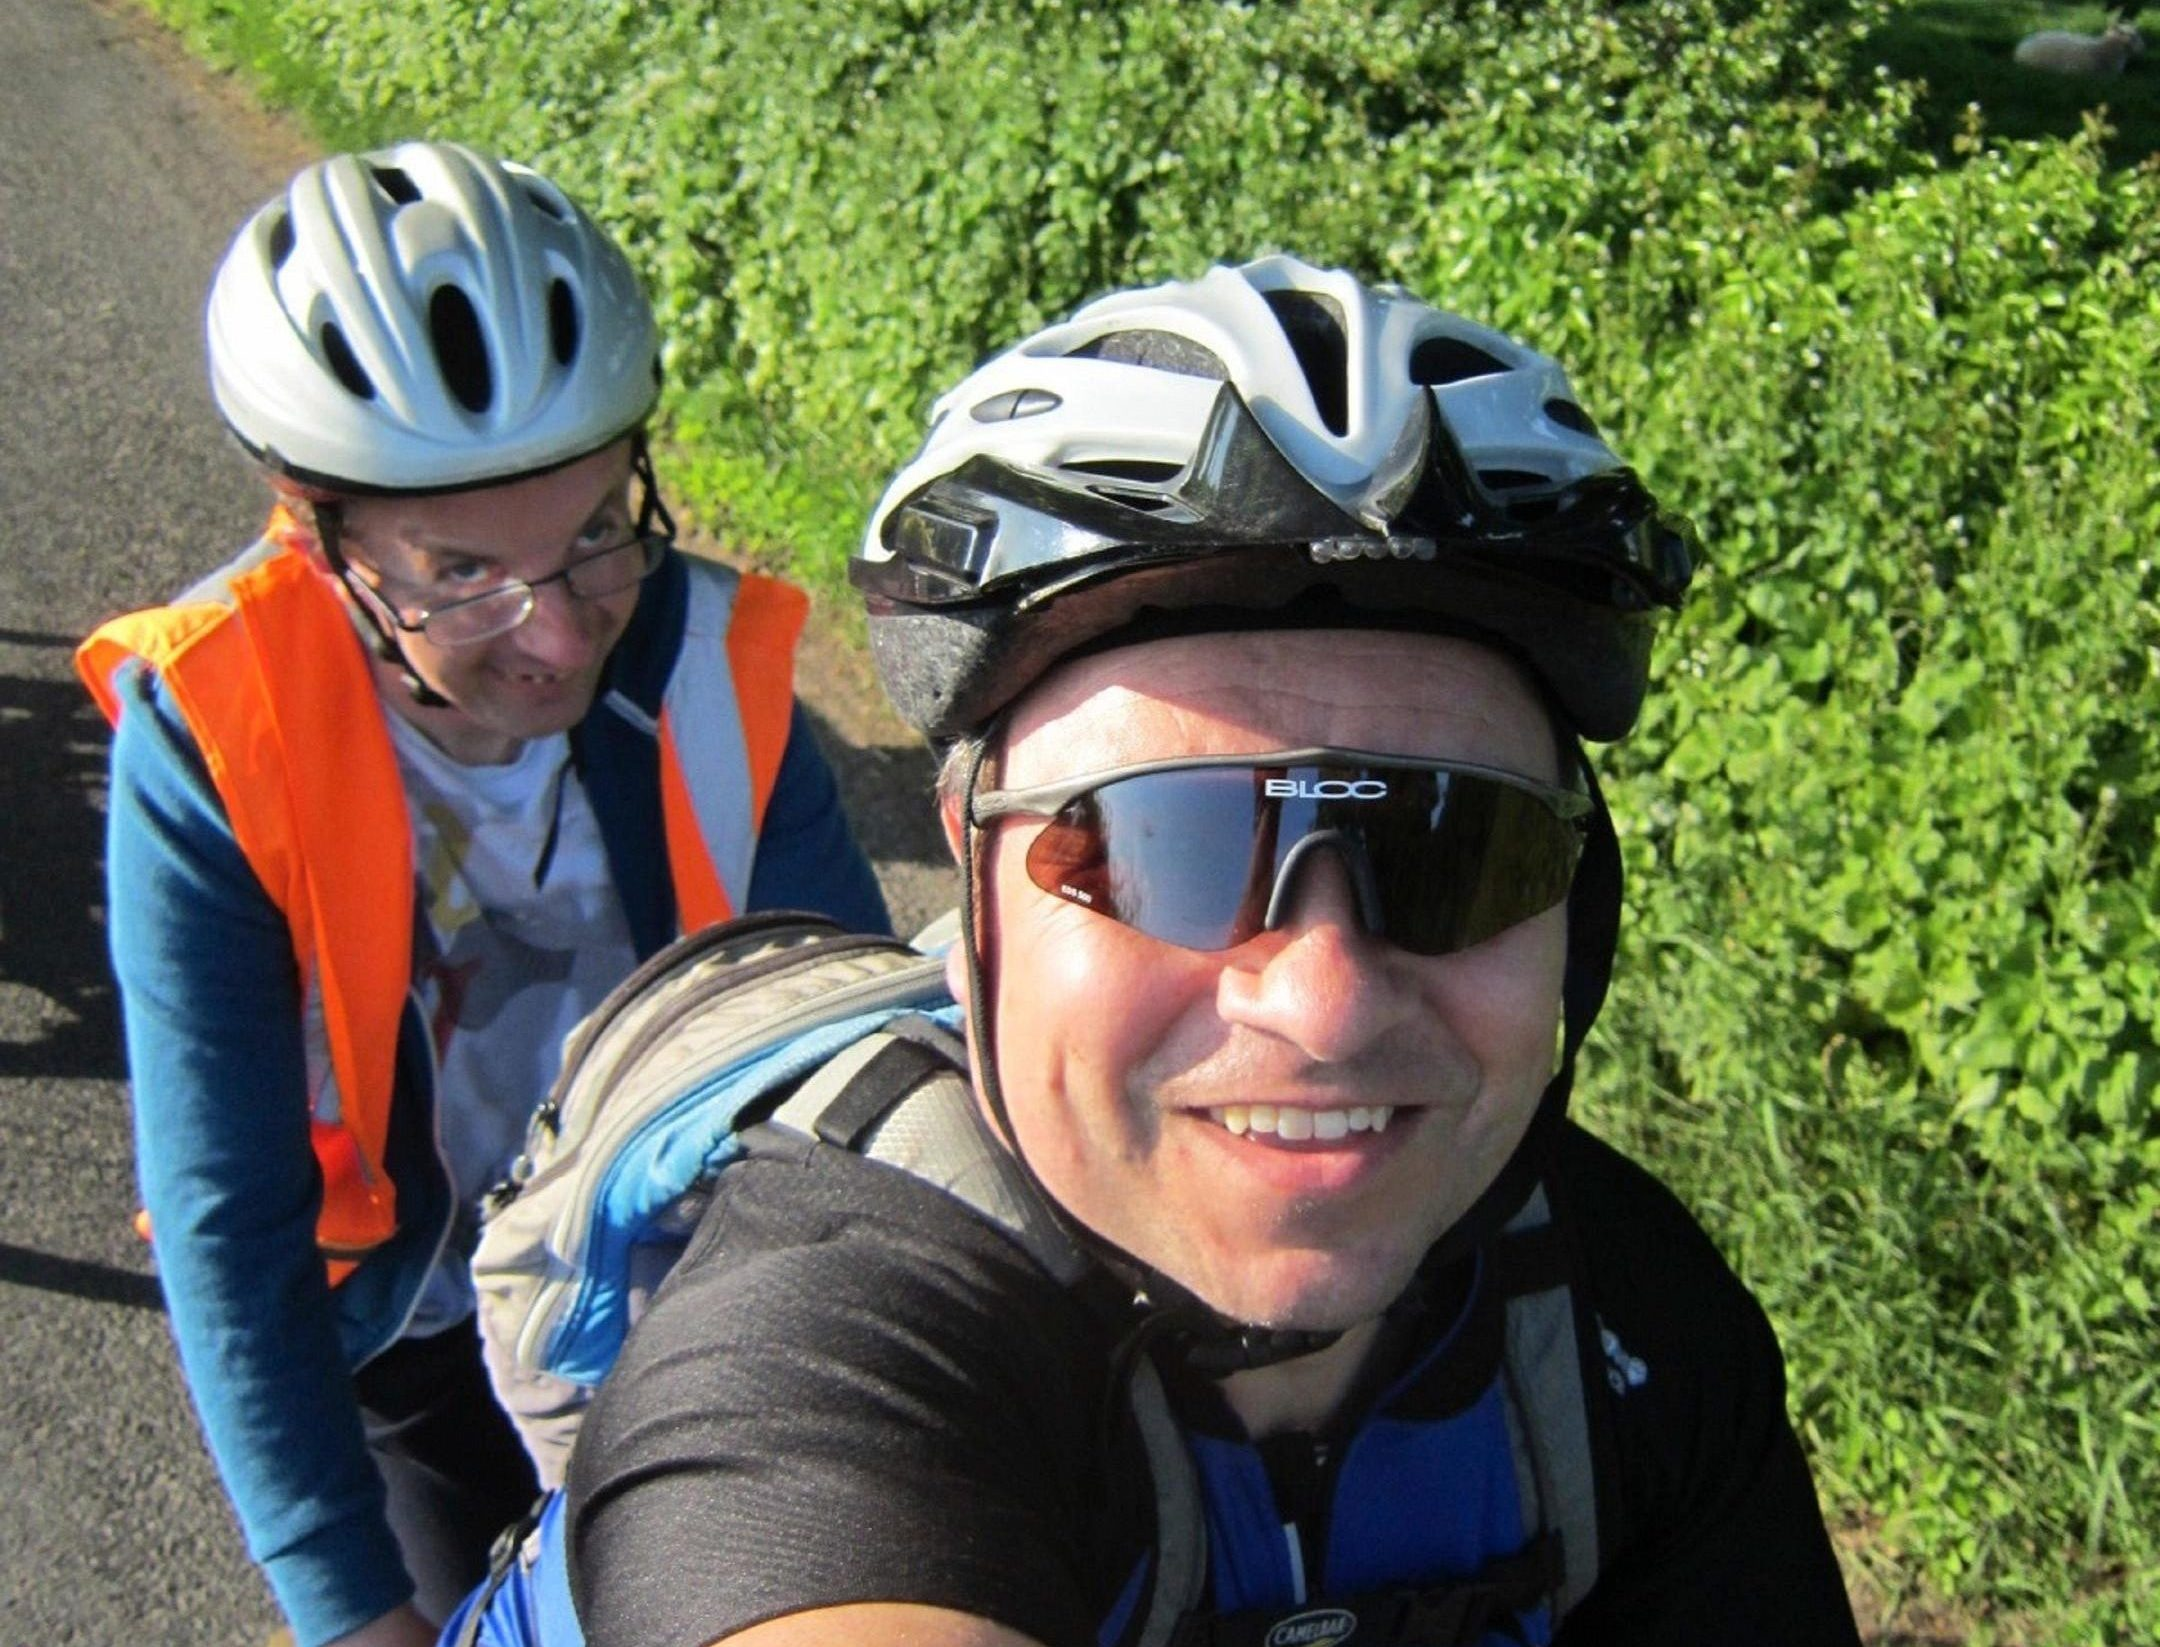 A close up of two people on a tandem riding by a hedgerow.